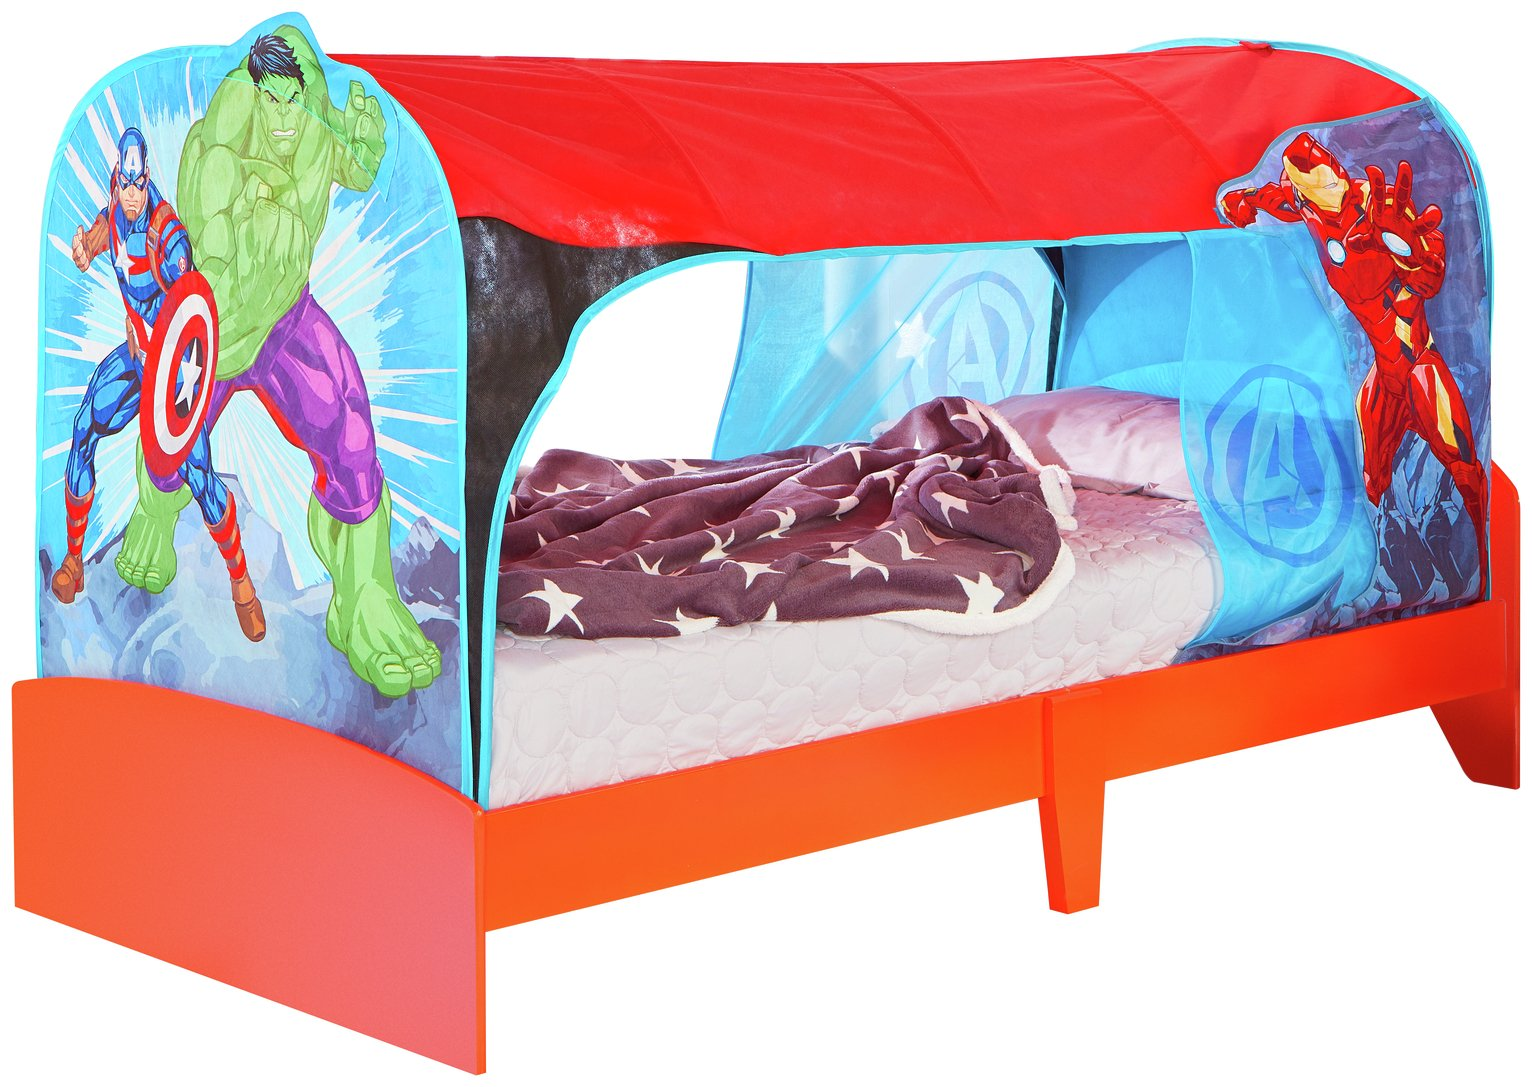 Marvel Avengers Single Over Bed Tent Den